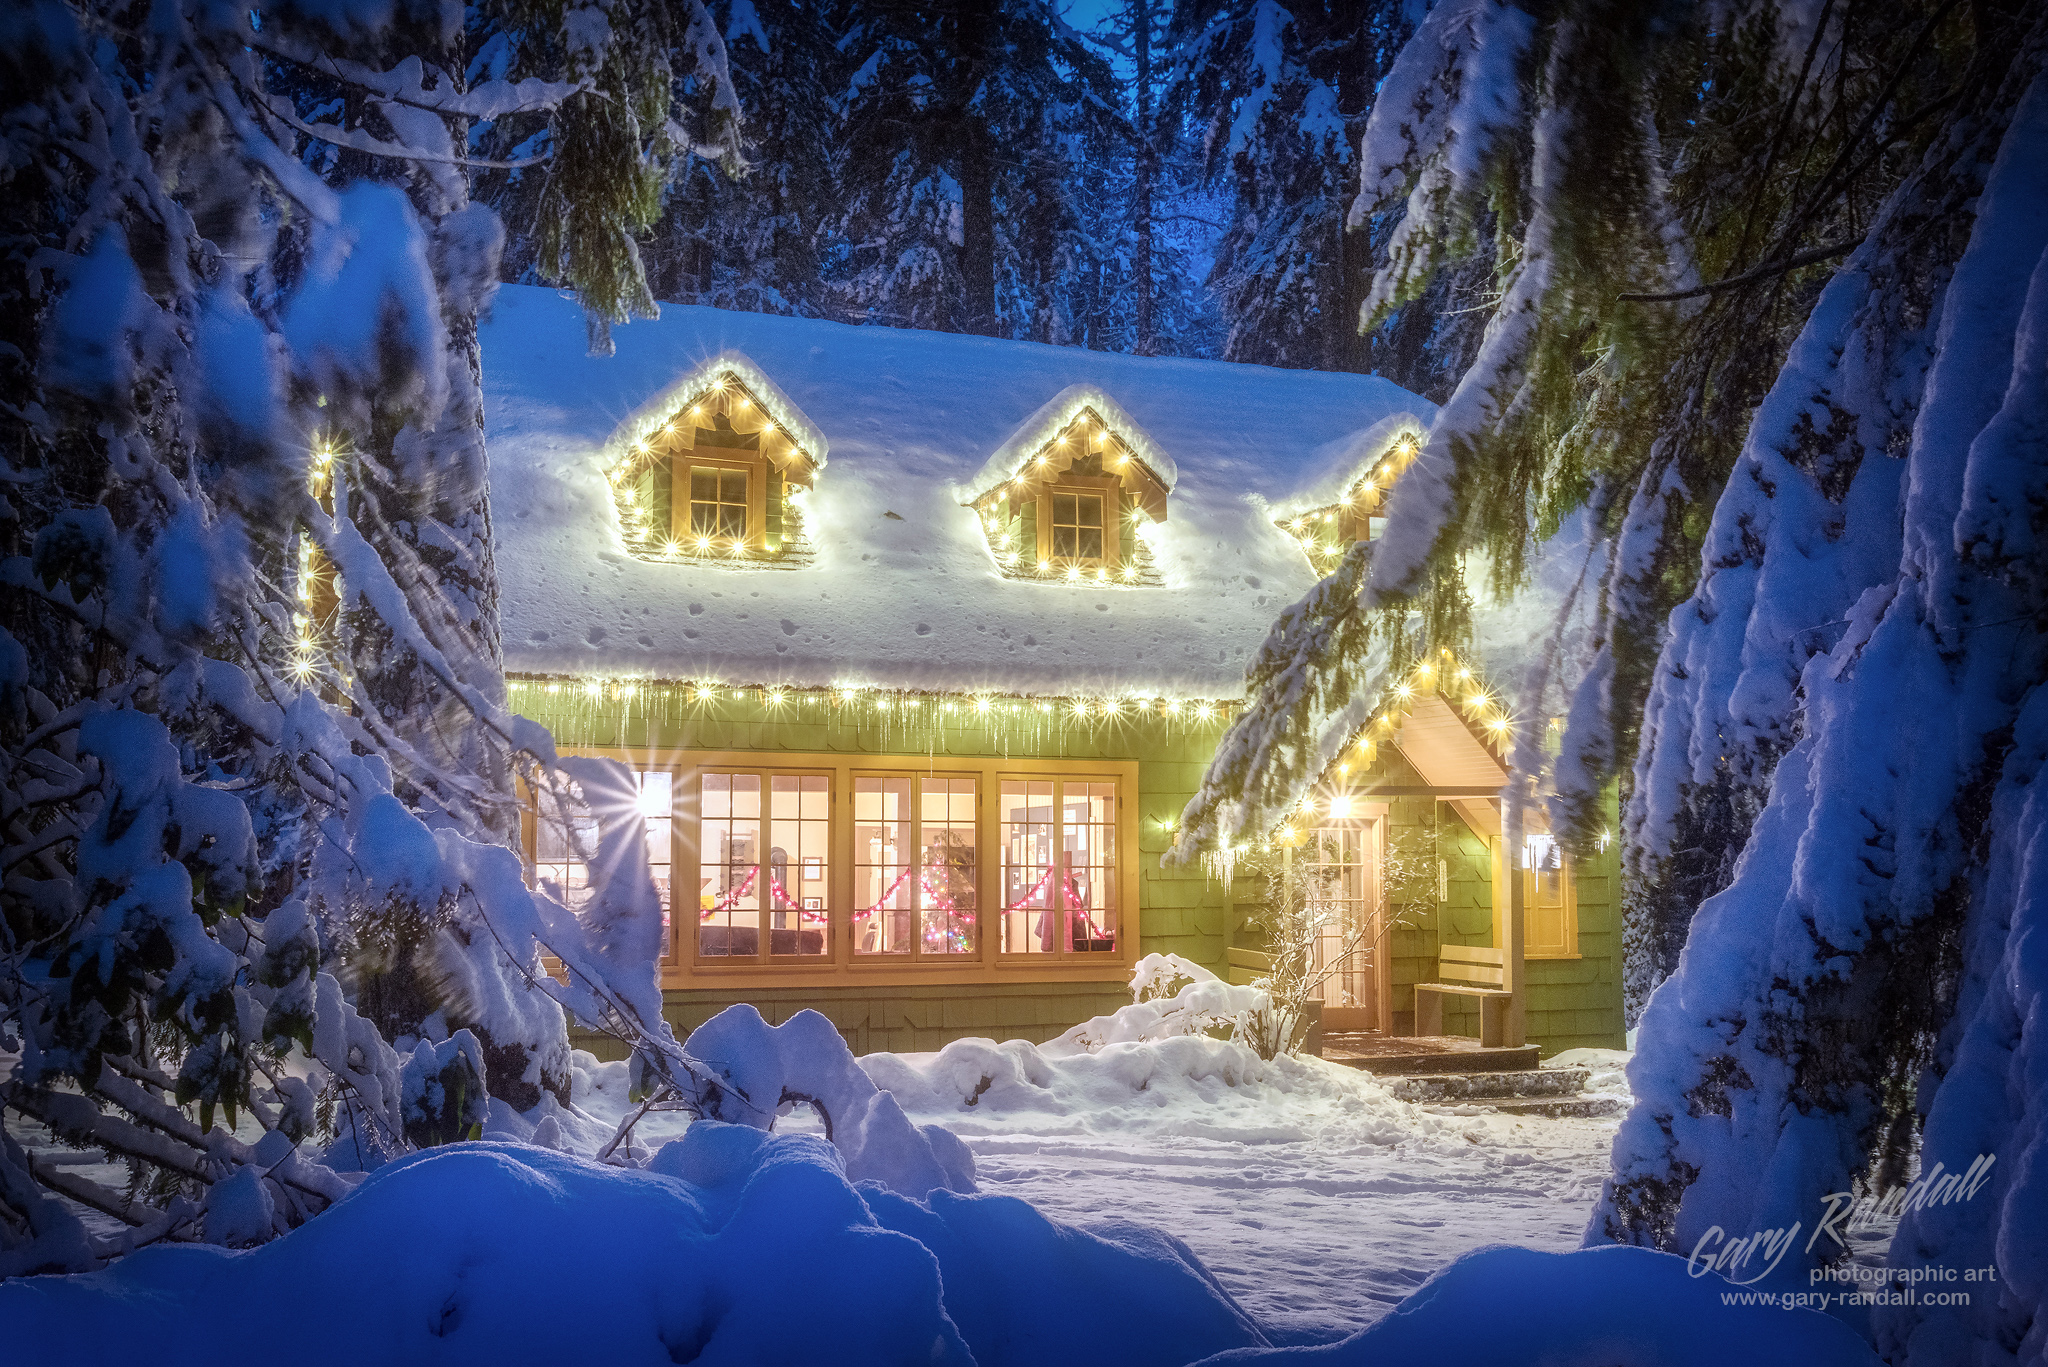 A Christmas Cabin in The Woods.